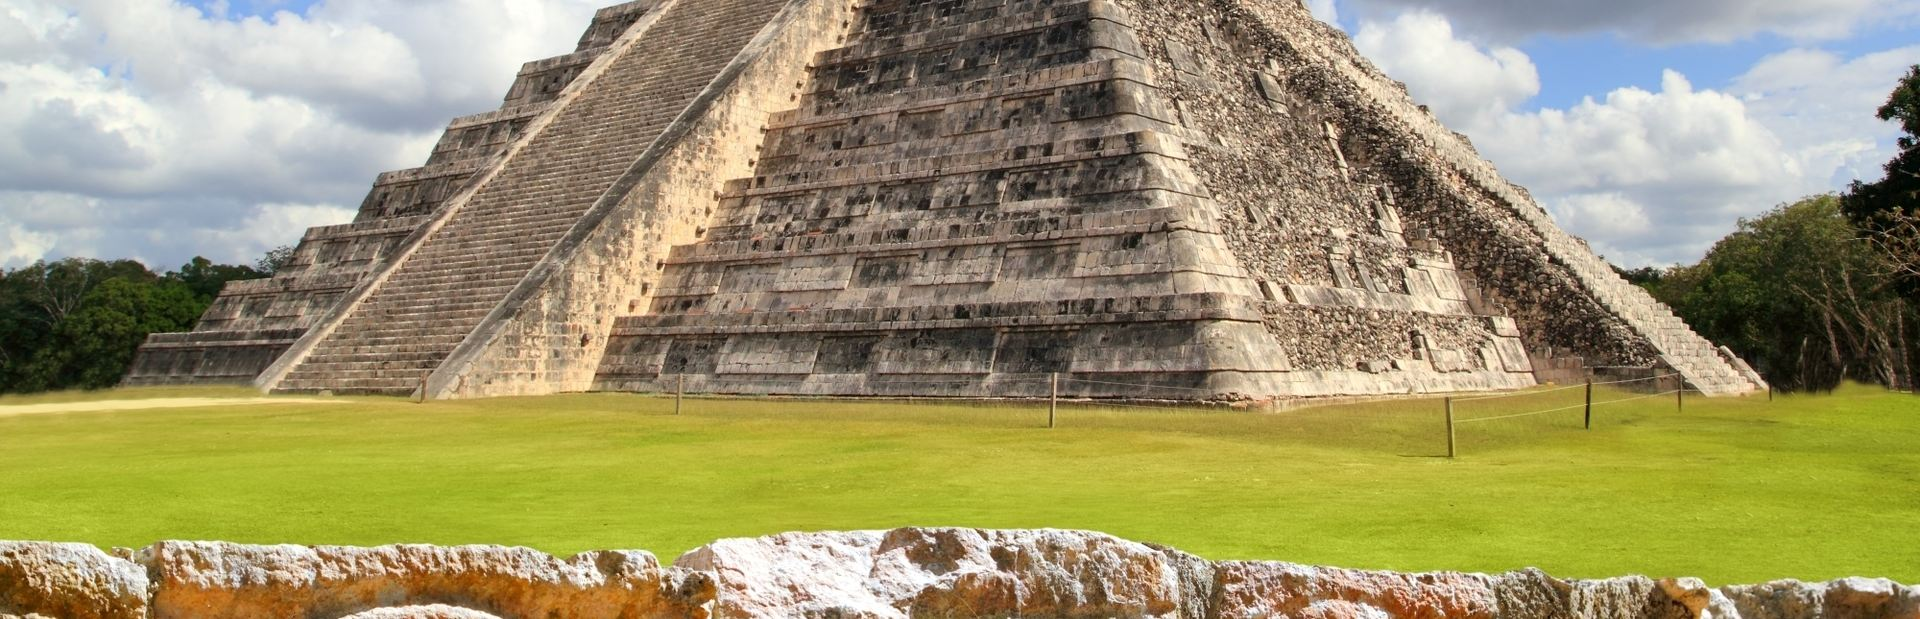 Mexico charter itineraries